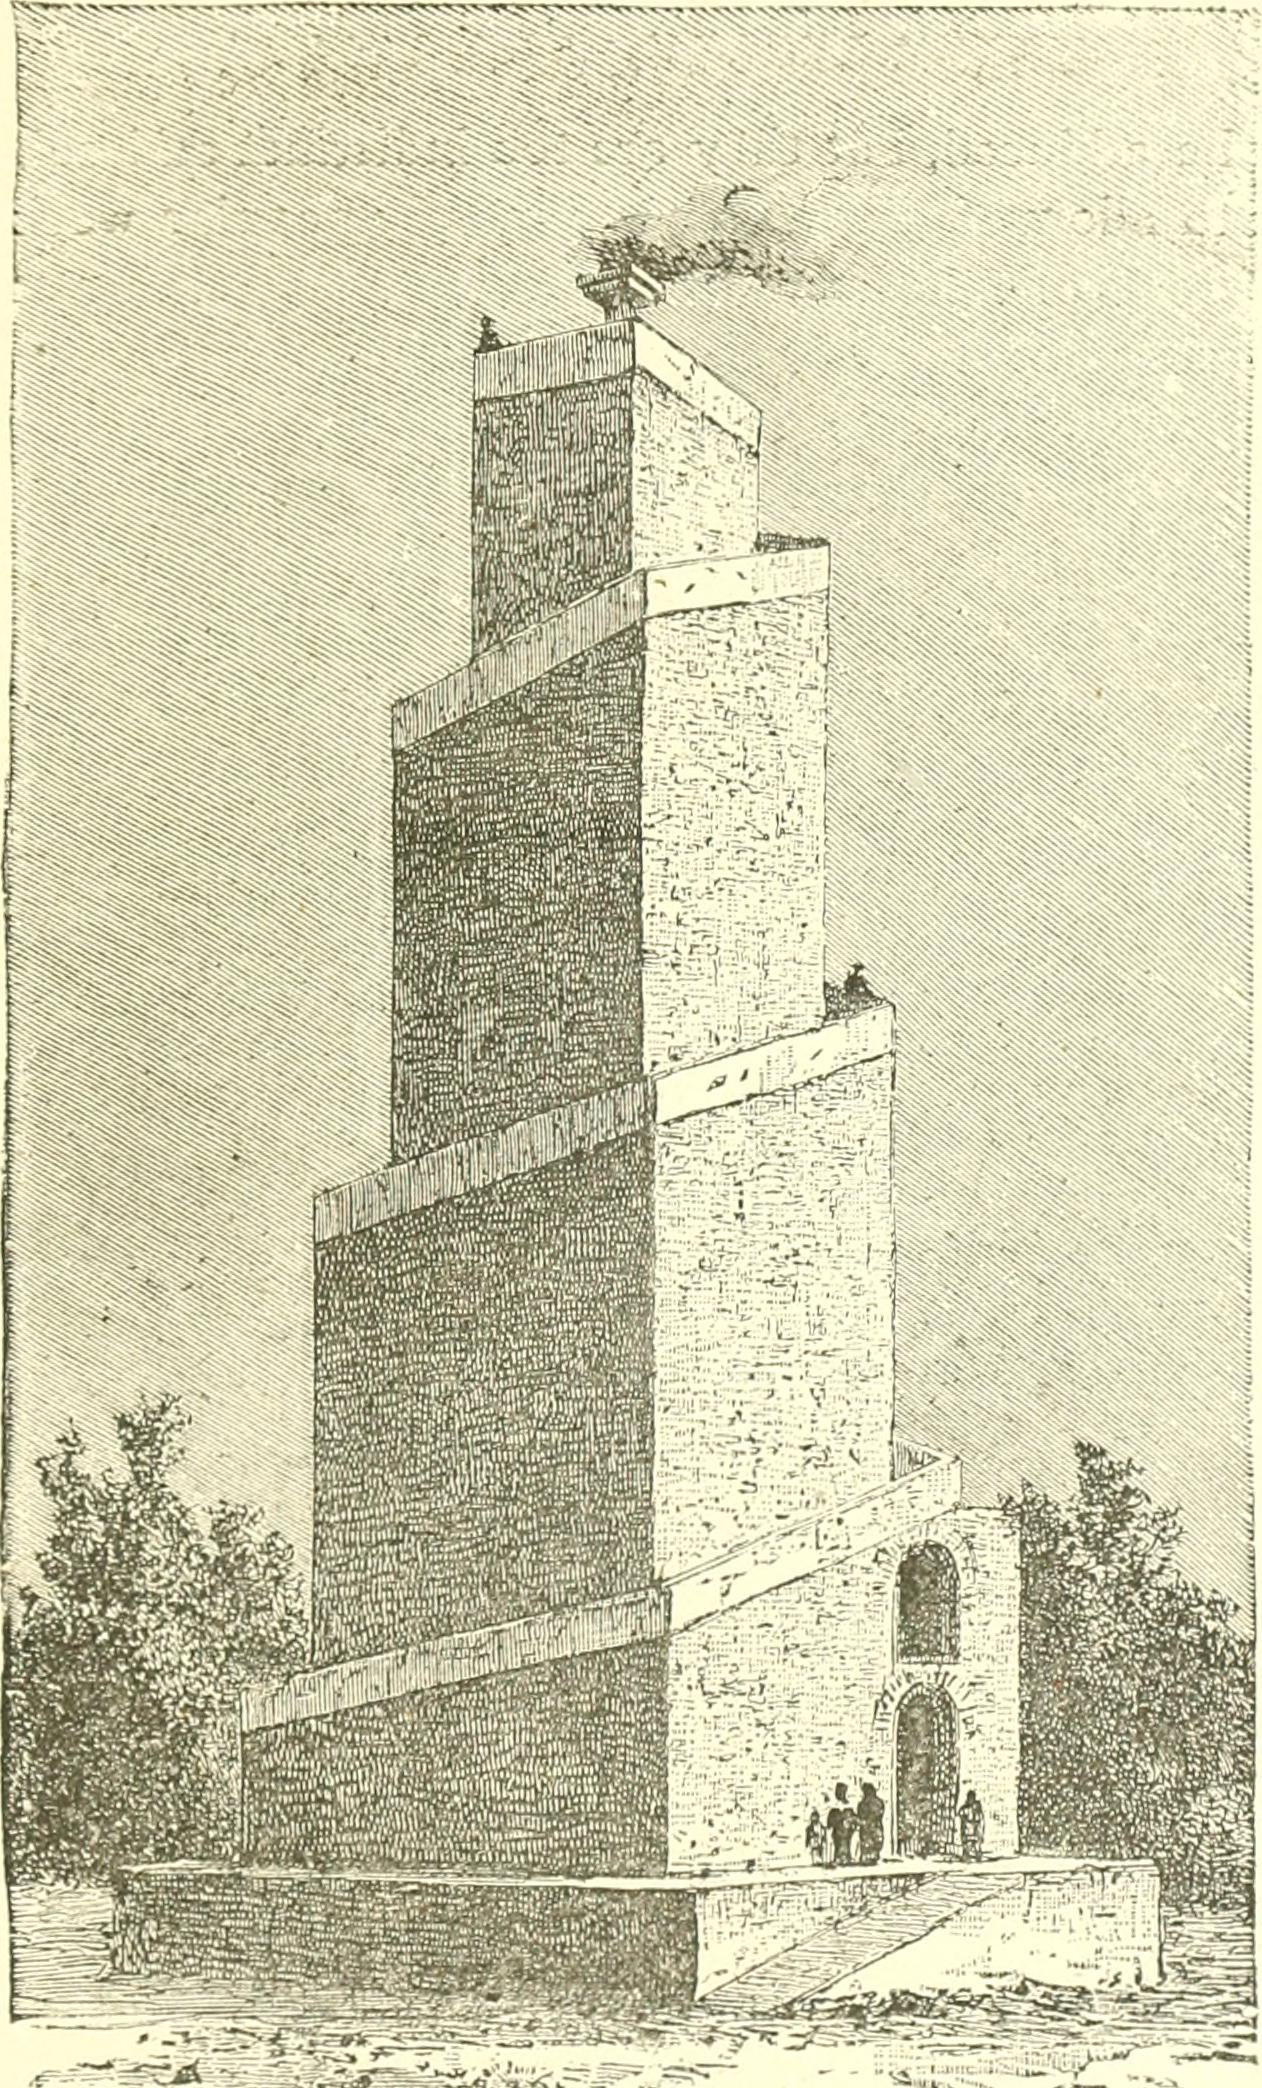 https://upload.wikimedia.org/wikipedia/commons/7/76/Media%2C_Babylon_and_Persia_-_including_a_study_of_the_Zend-Avesta_or_religion_of_Zoroaster%2C_from_the_fall_of_Nineveh_to_the_Persian_war_%281889%29_%2814594614317%29.jpg